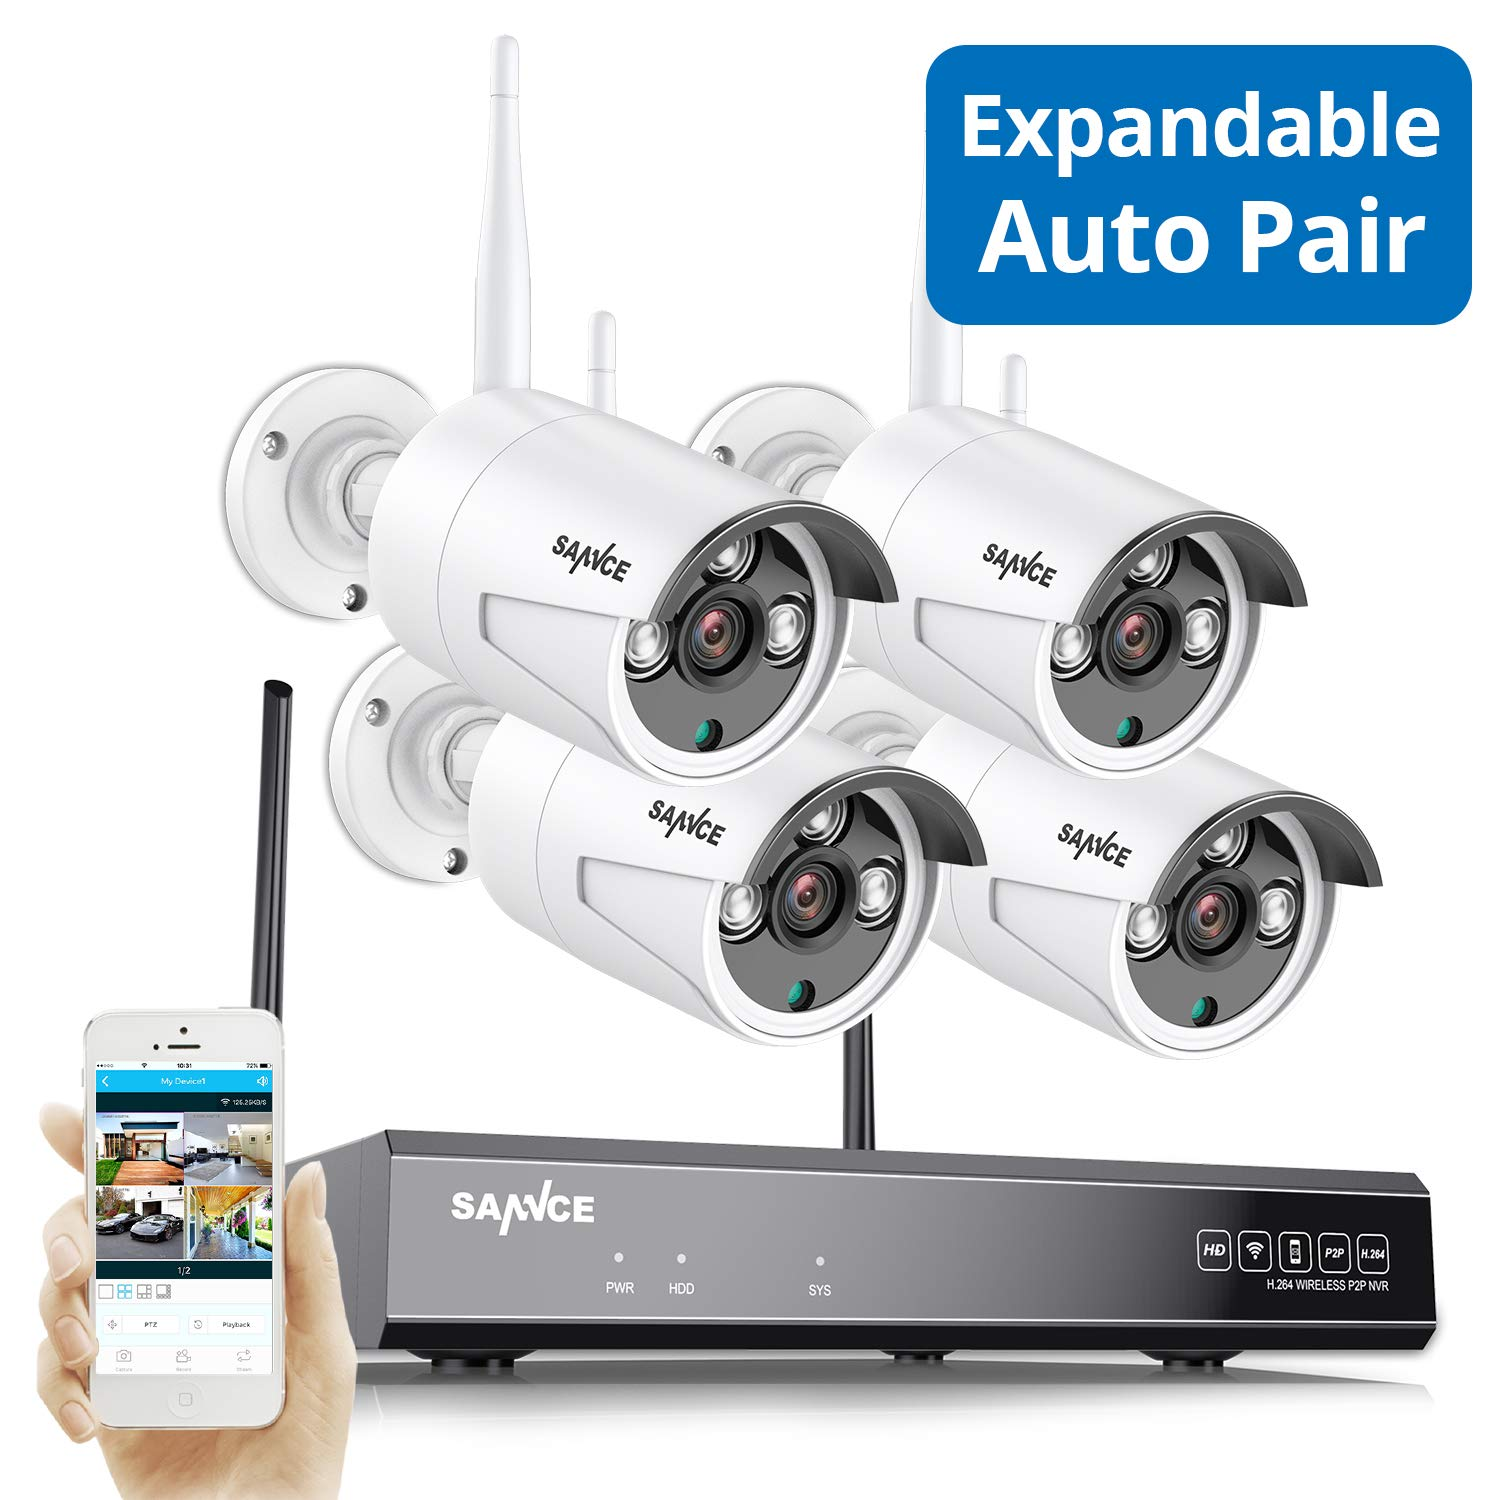 Update Strong Signal Version, Wireless Security Camera System, SANNCE 1080P 8CH NVR and 4 pcs 960P IP66 Weatherproof Surveillance Cameras,Indoor/Outdoor with 100FT Night Vision, NO HDD Included